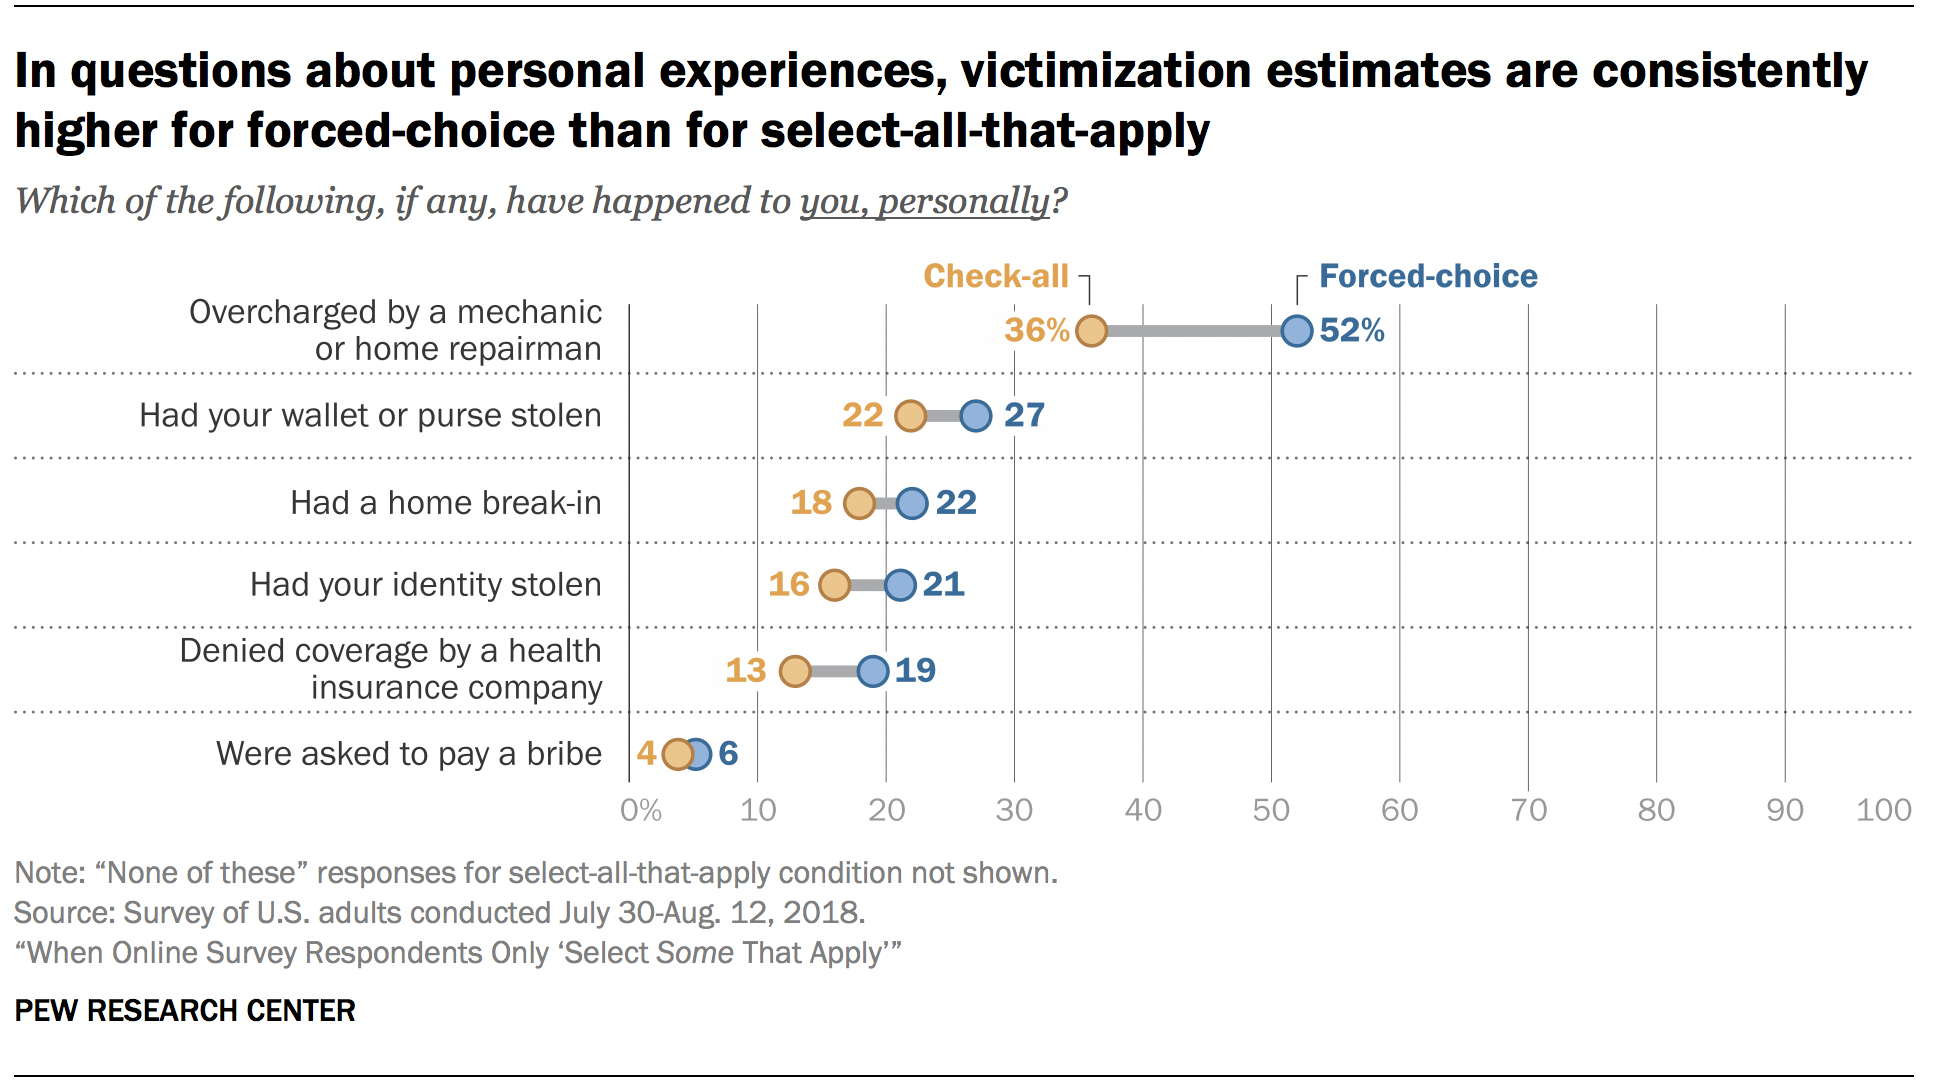 In questions about personal experiences, victimization estimates are consistently higher for forced-choice than for select-all-that-apply